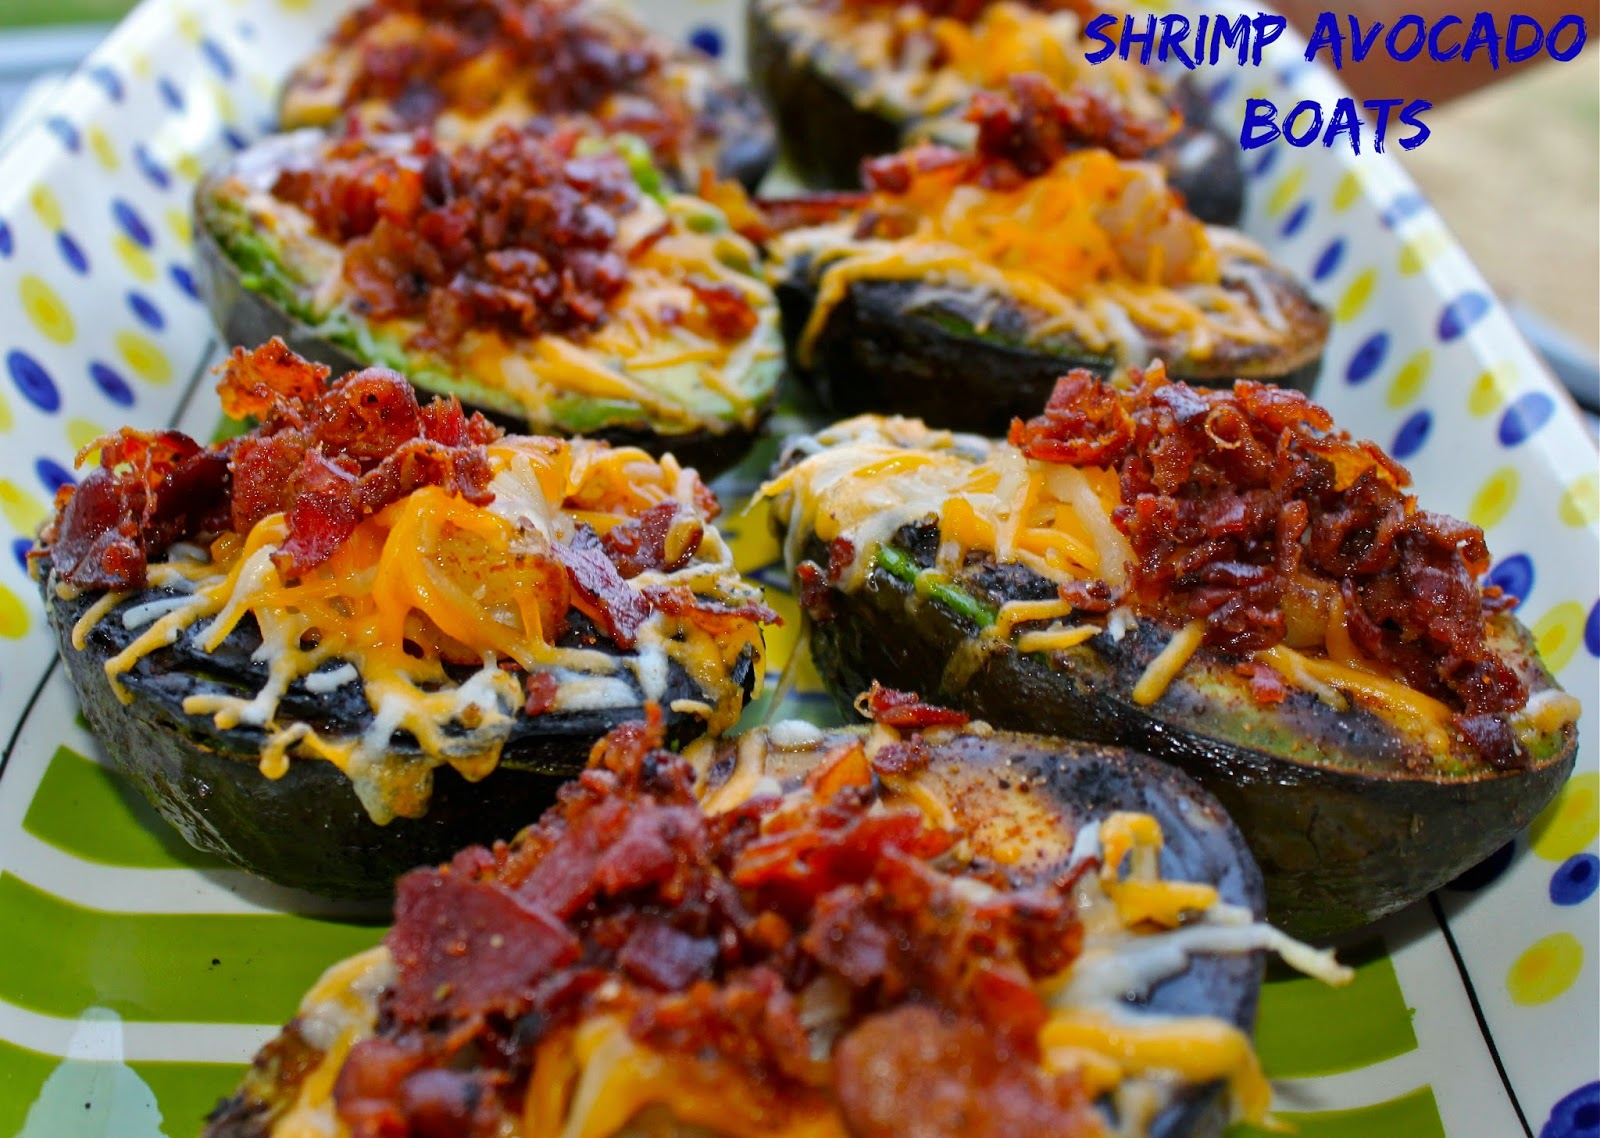 Grilled Avocado with bacon